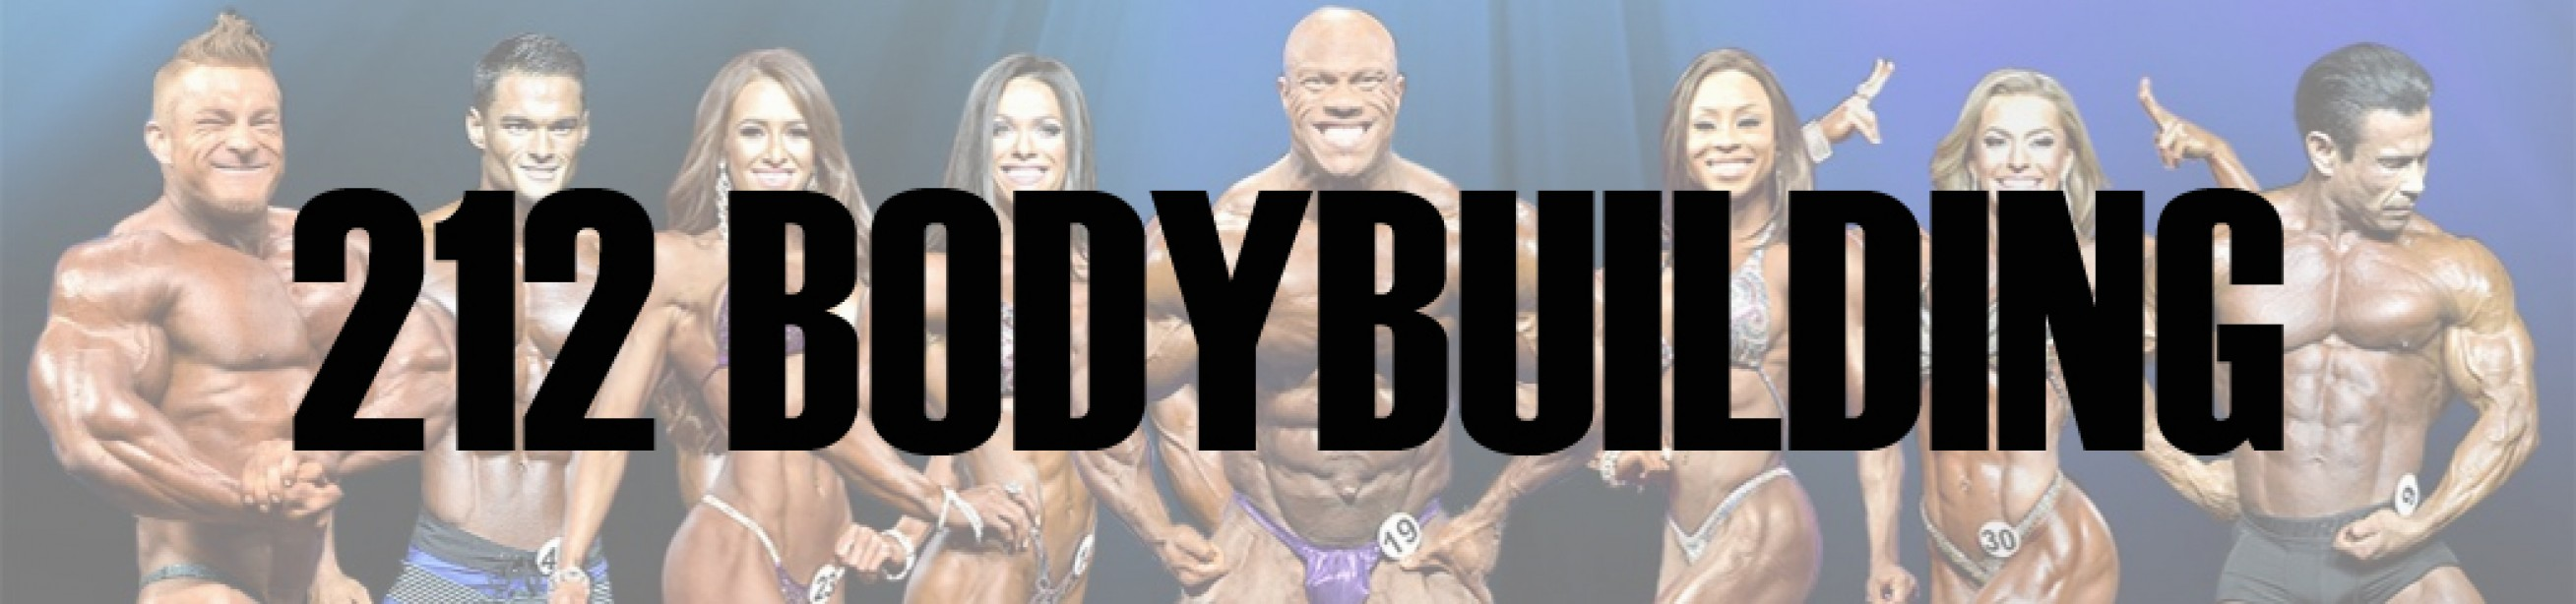 2017 Olympia 212 Bodybuilding Call Out Report